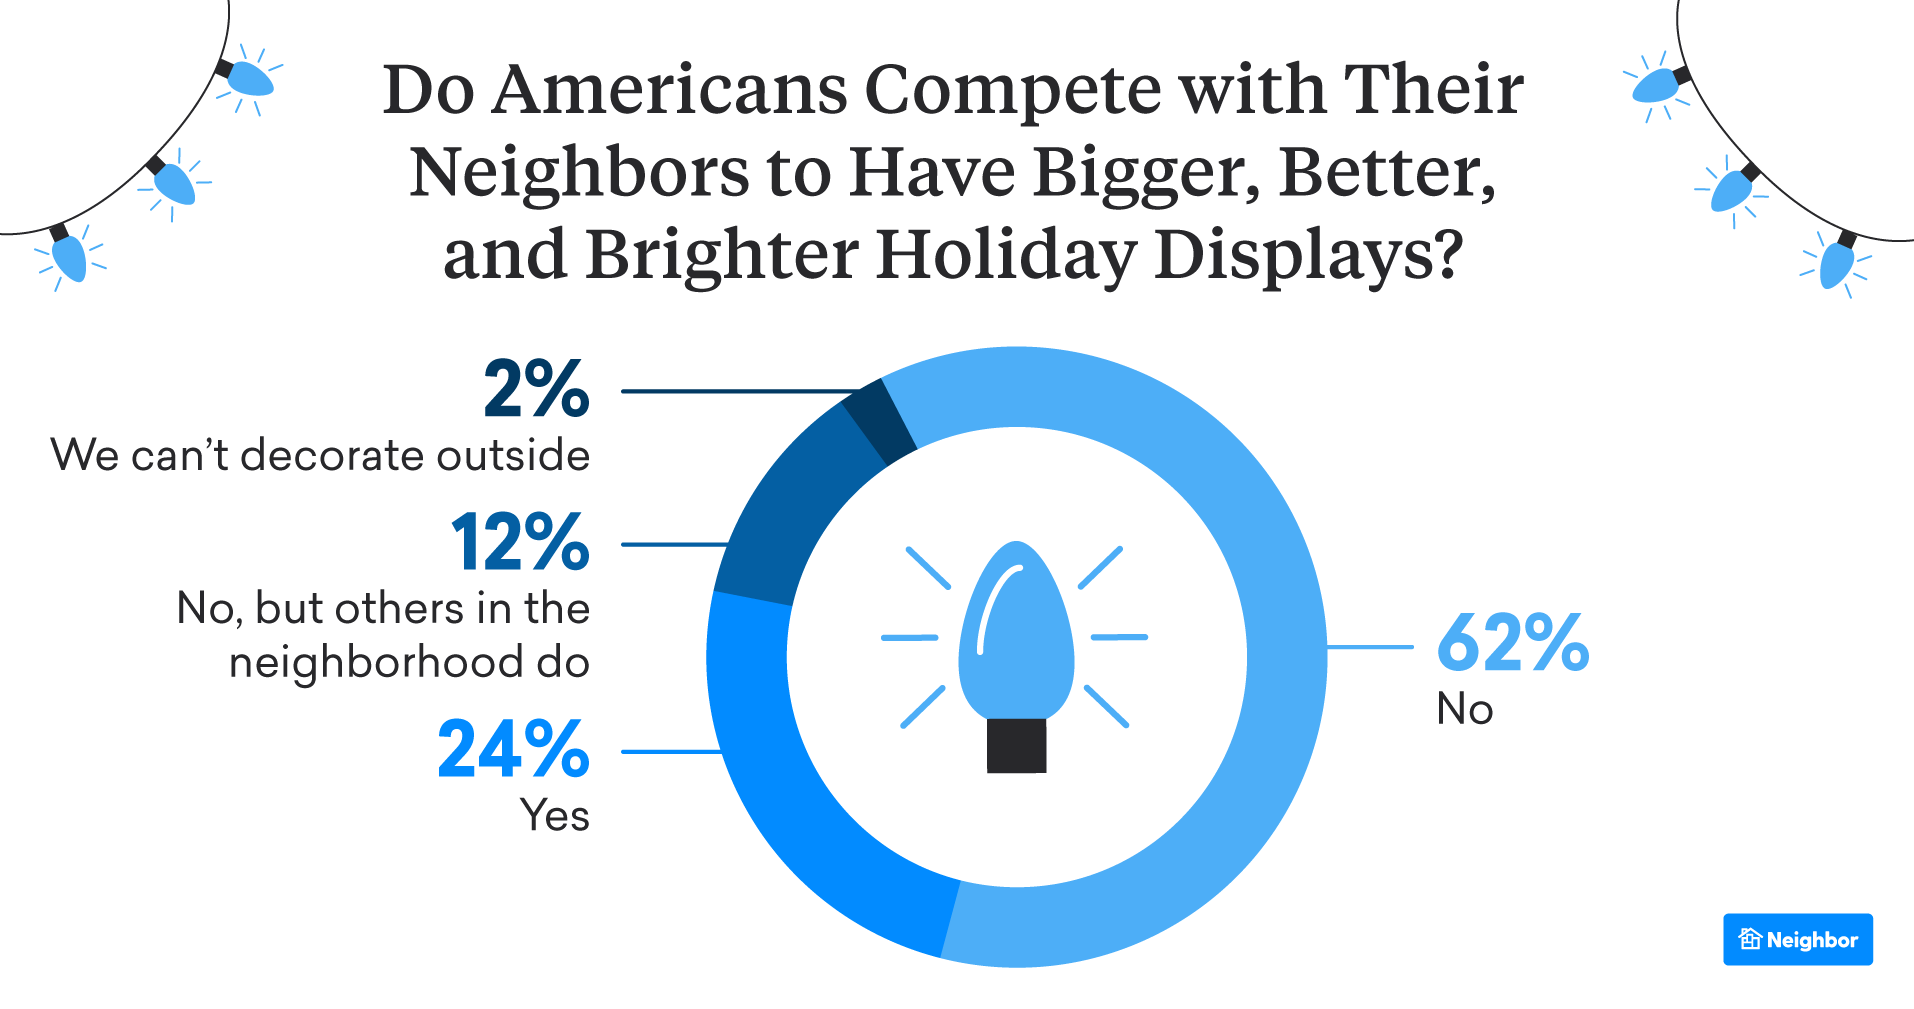 Are Decorators Feeling Neighborly? Most Said Yes